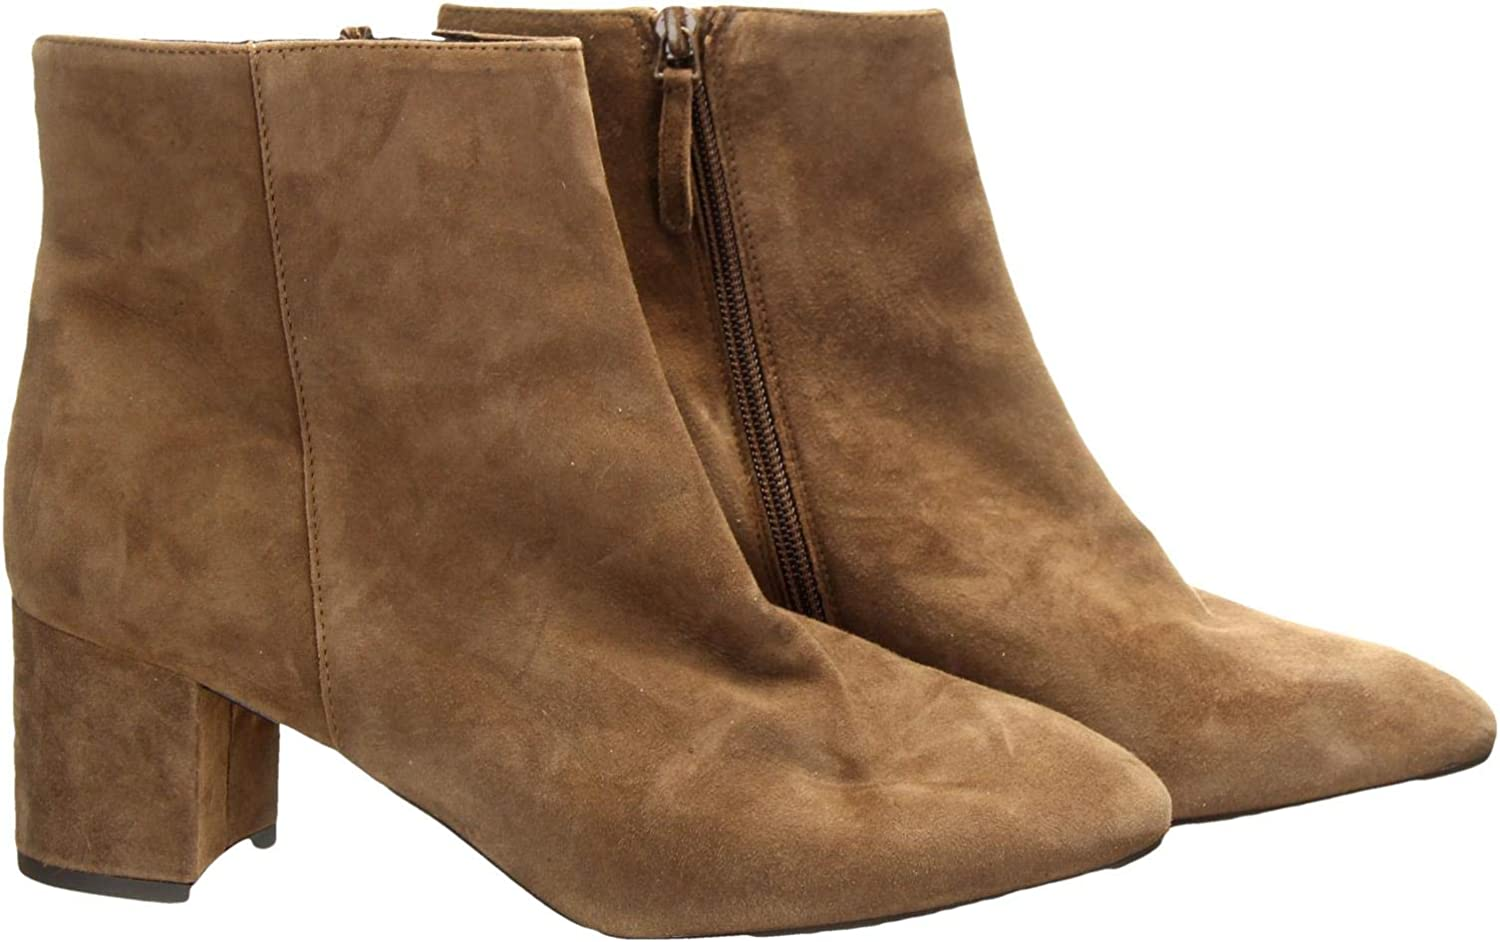 J Crew Hadley Suede Ankle Boots Booties